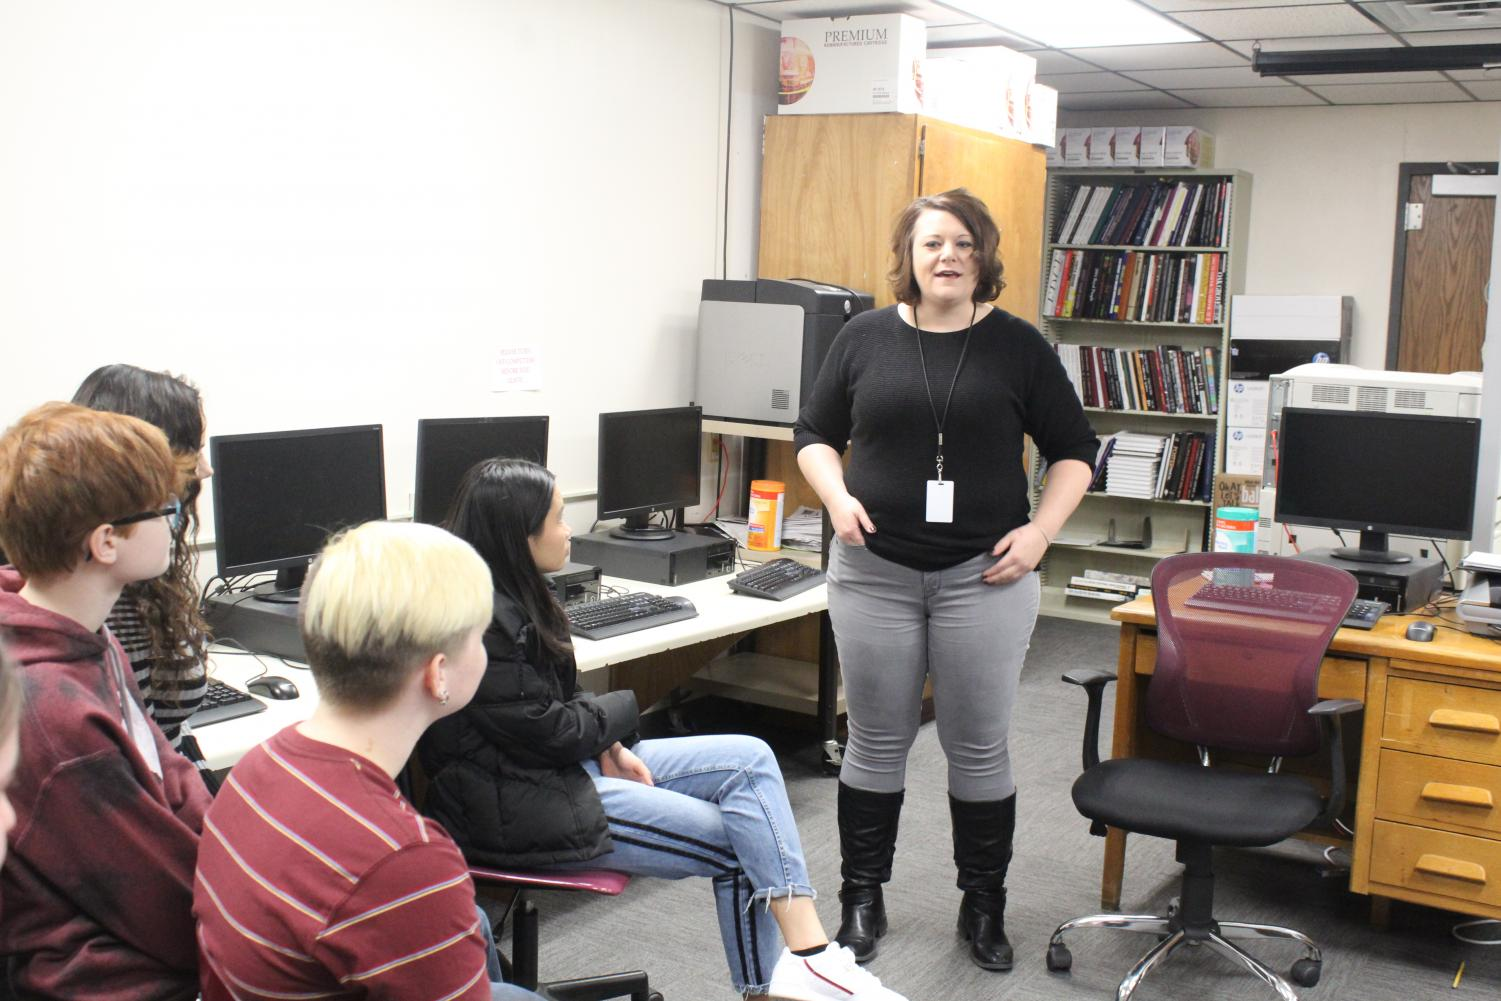 Hays High newspaper class had the opportunity to meet with the future Hays High journalism teacher on Feb. 21.